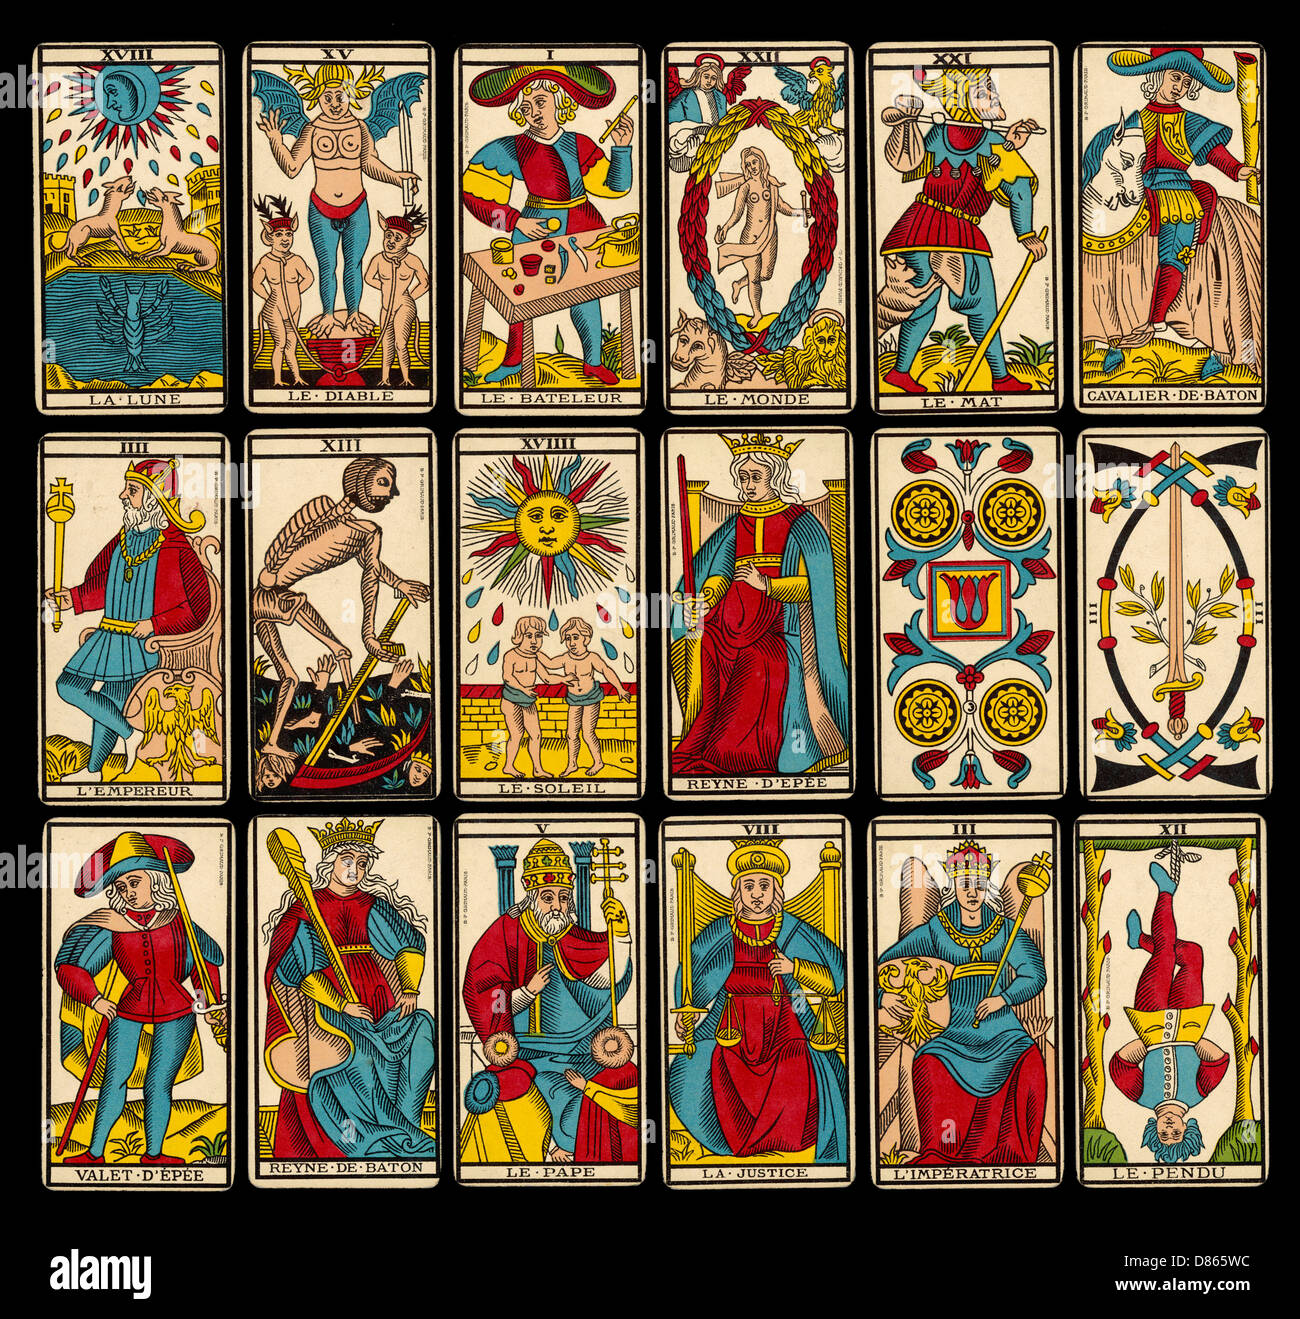 df35153459214a Selection Of Tarot Cards From Traditional Marseille Pack - Stock Image